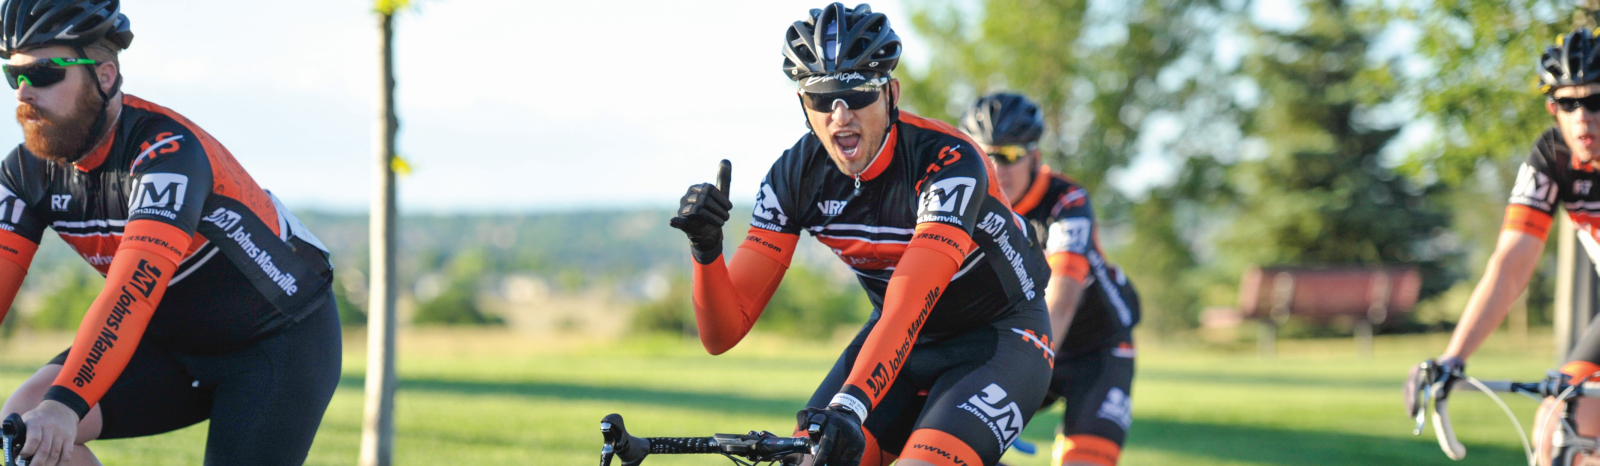 2016 Bike MS: Round Up Ride